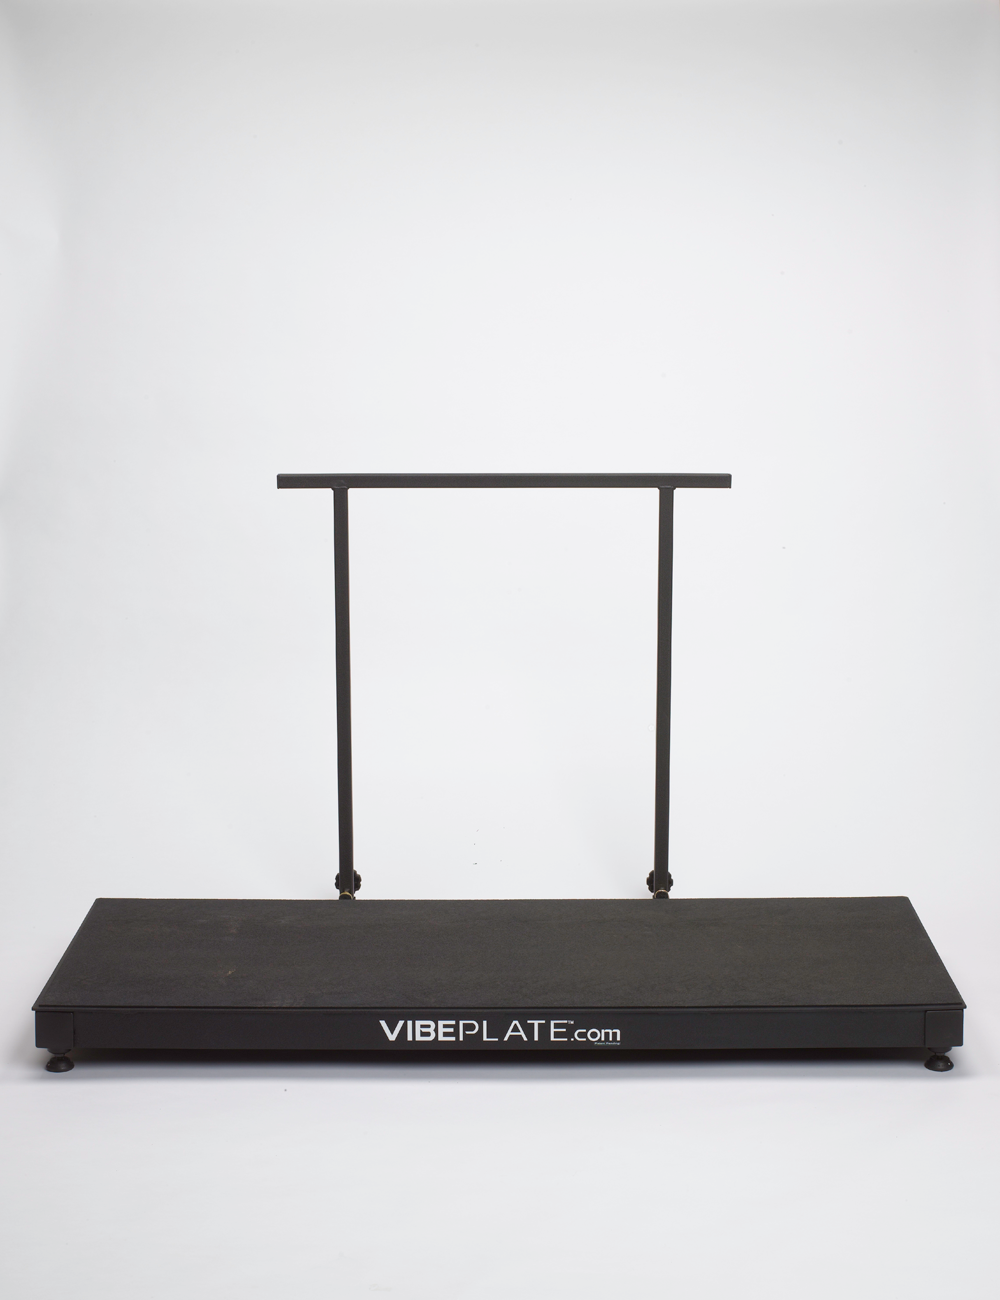 Vibe_Plate_00063c